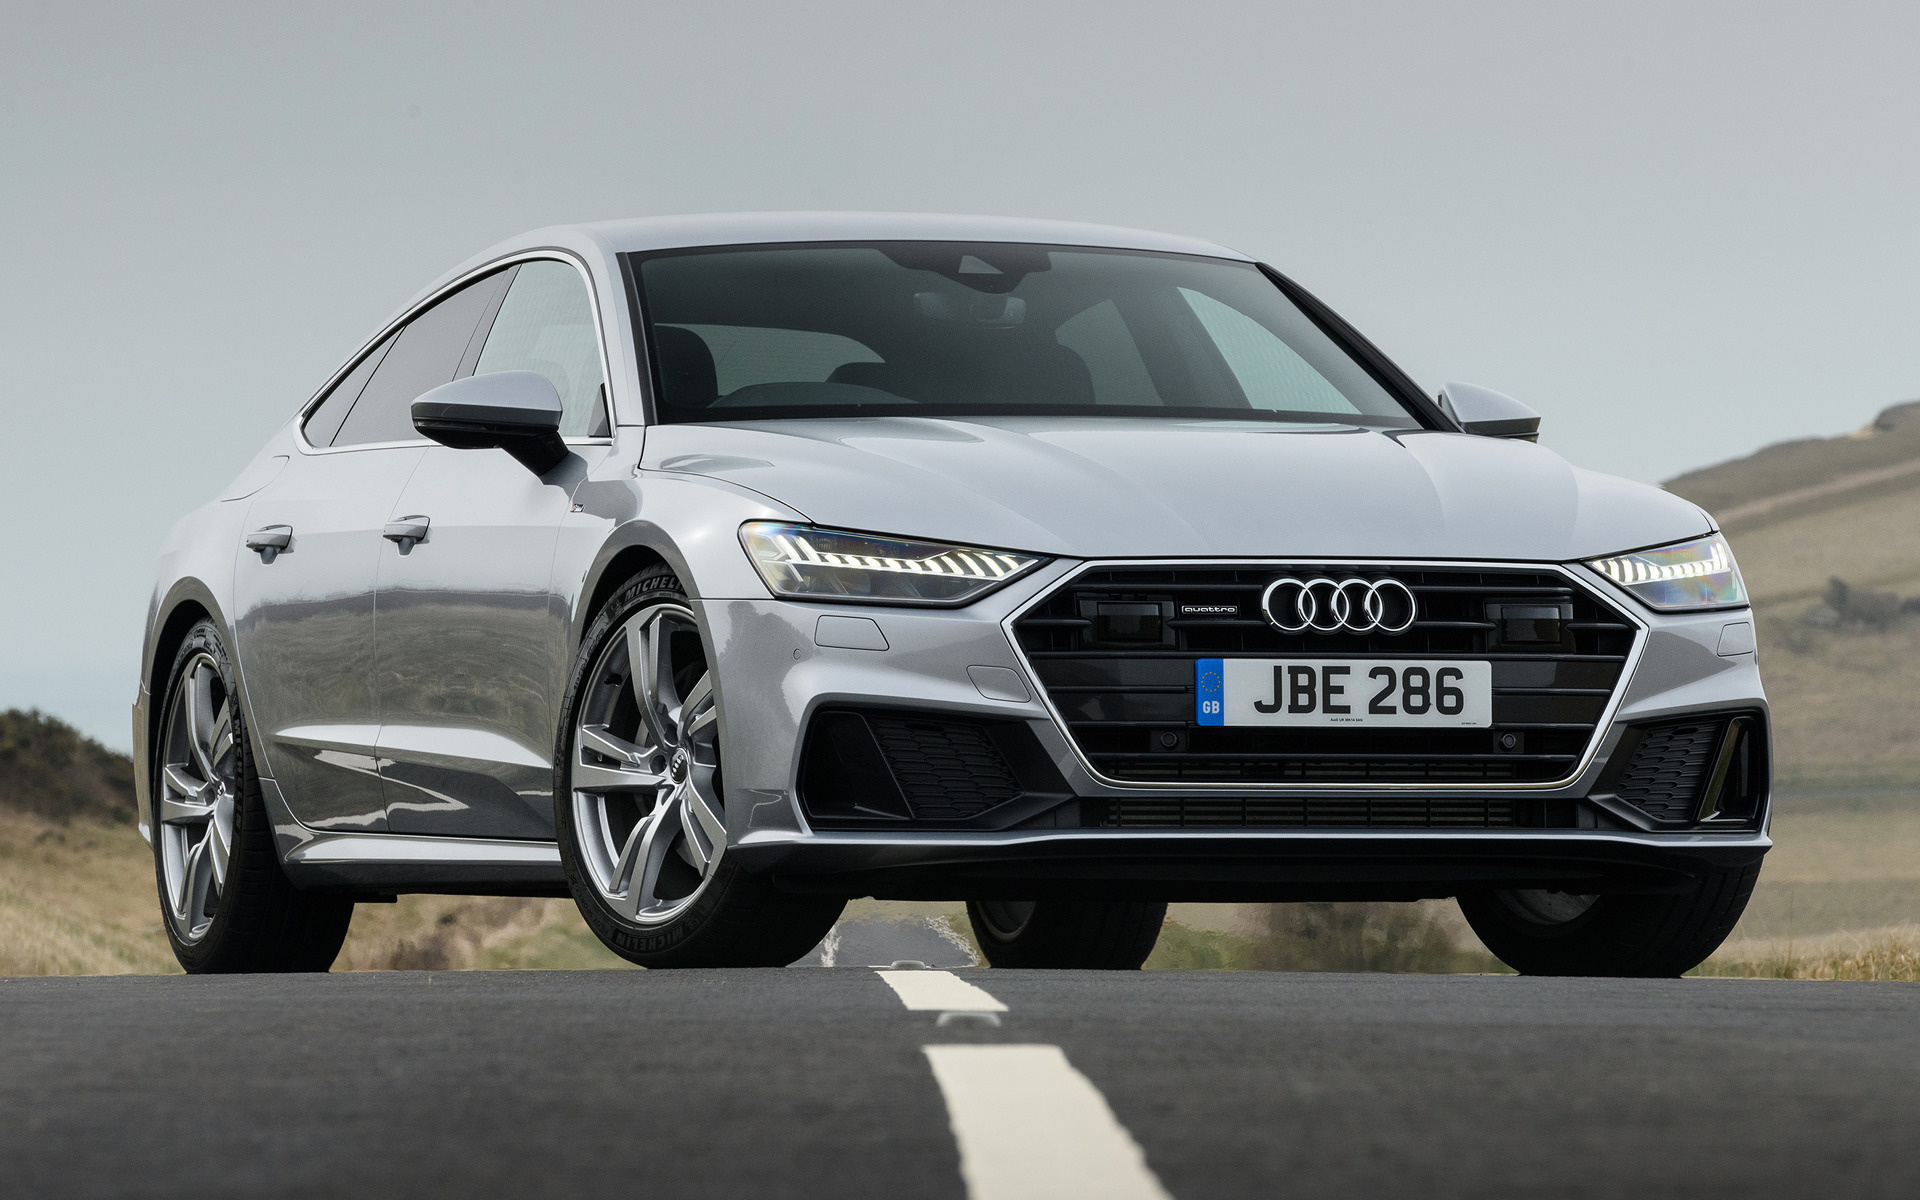 2018 Audi S5 >> 2018 Audi A7 Sportback S line (UK) - Wallpapers and HD Images | Car Pixel